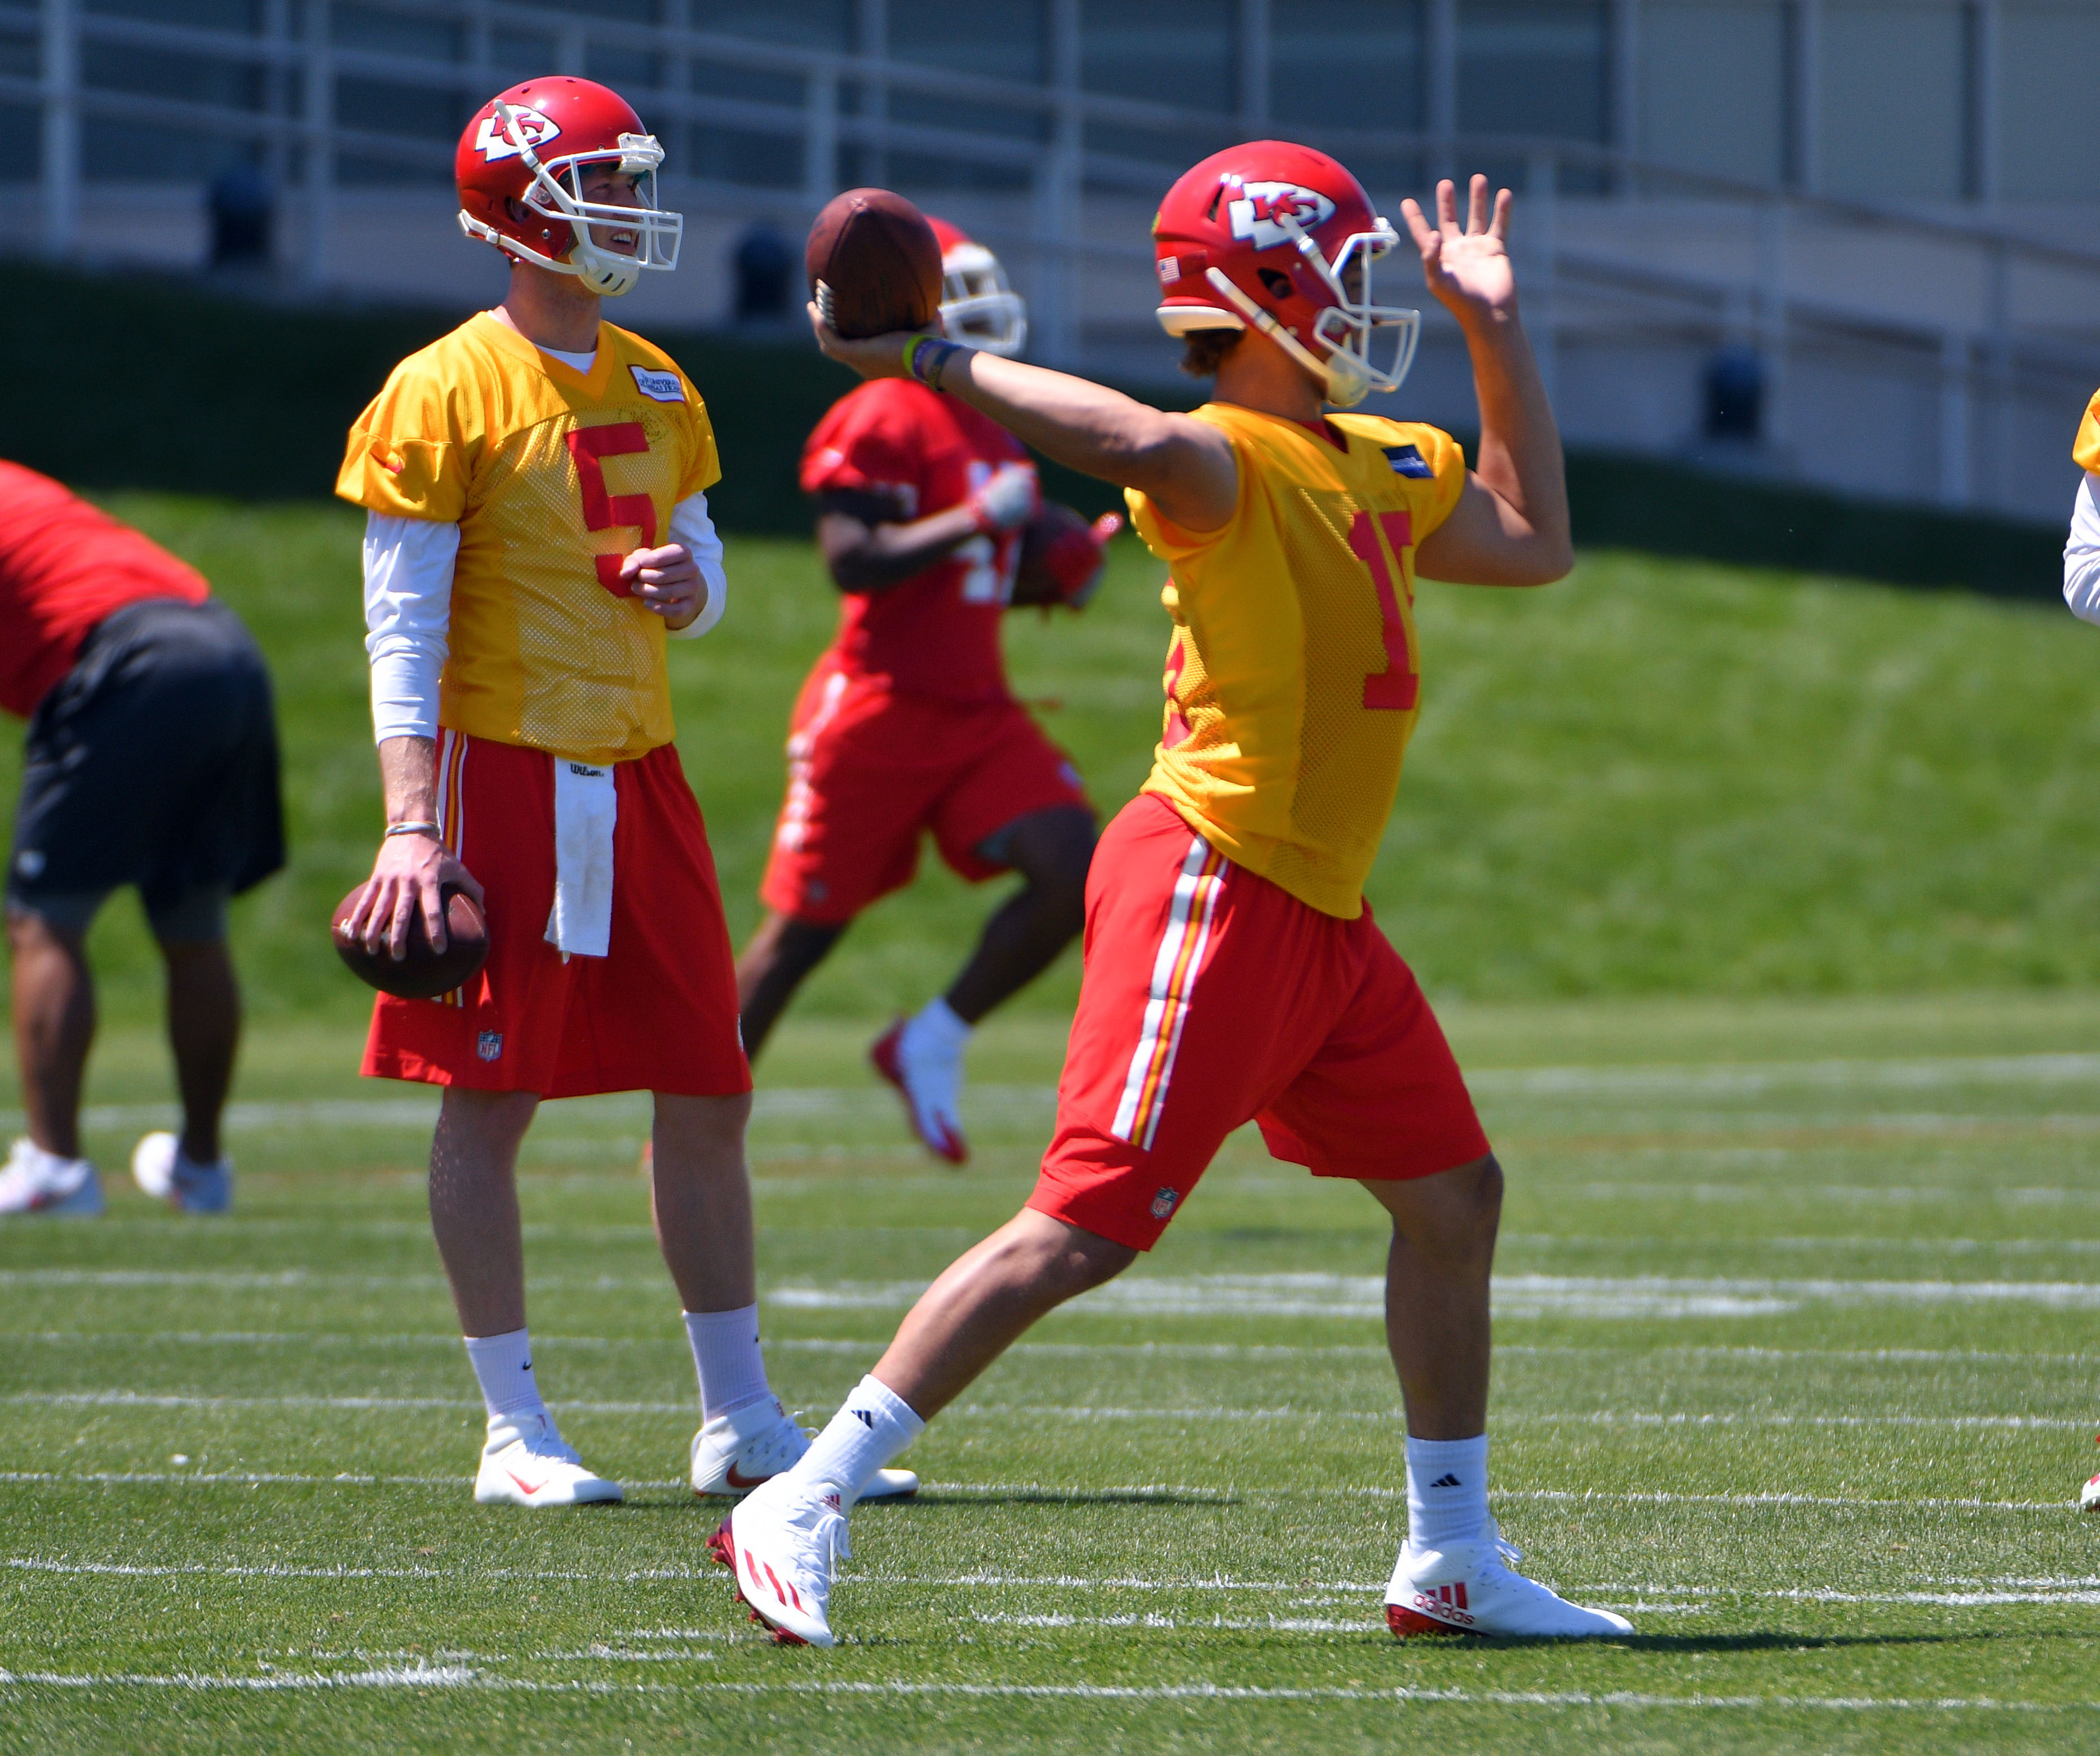 10045167-nfl-kansas-city-chiefs-rookie-minicamp